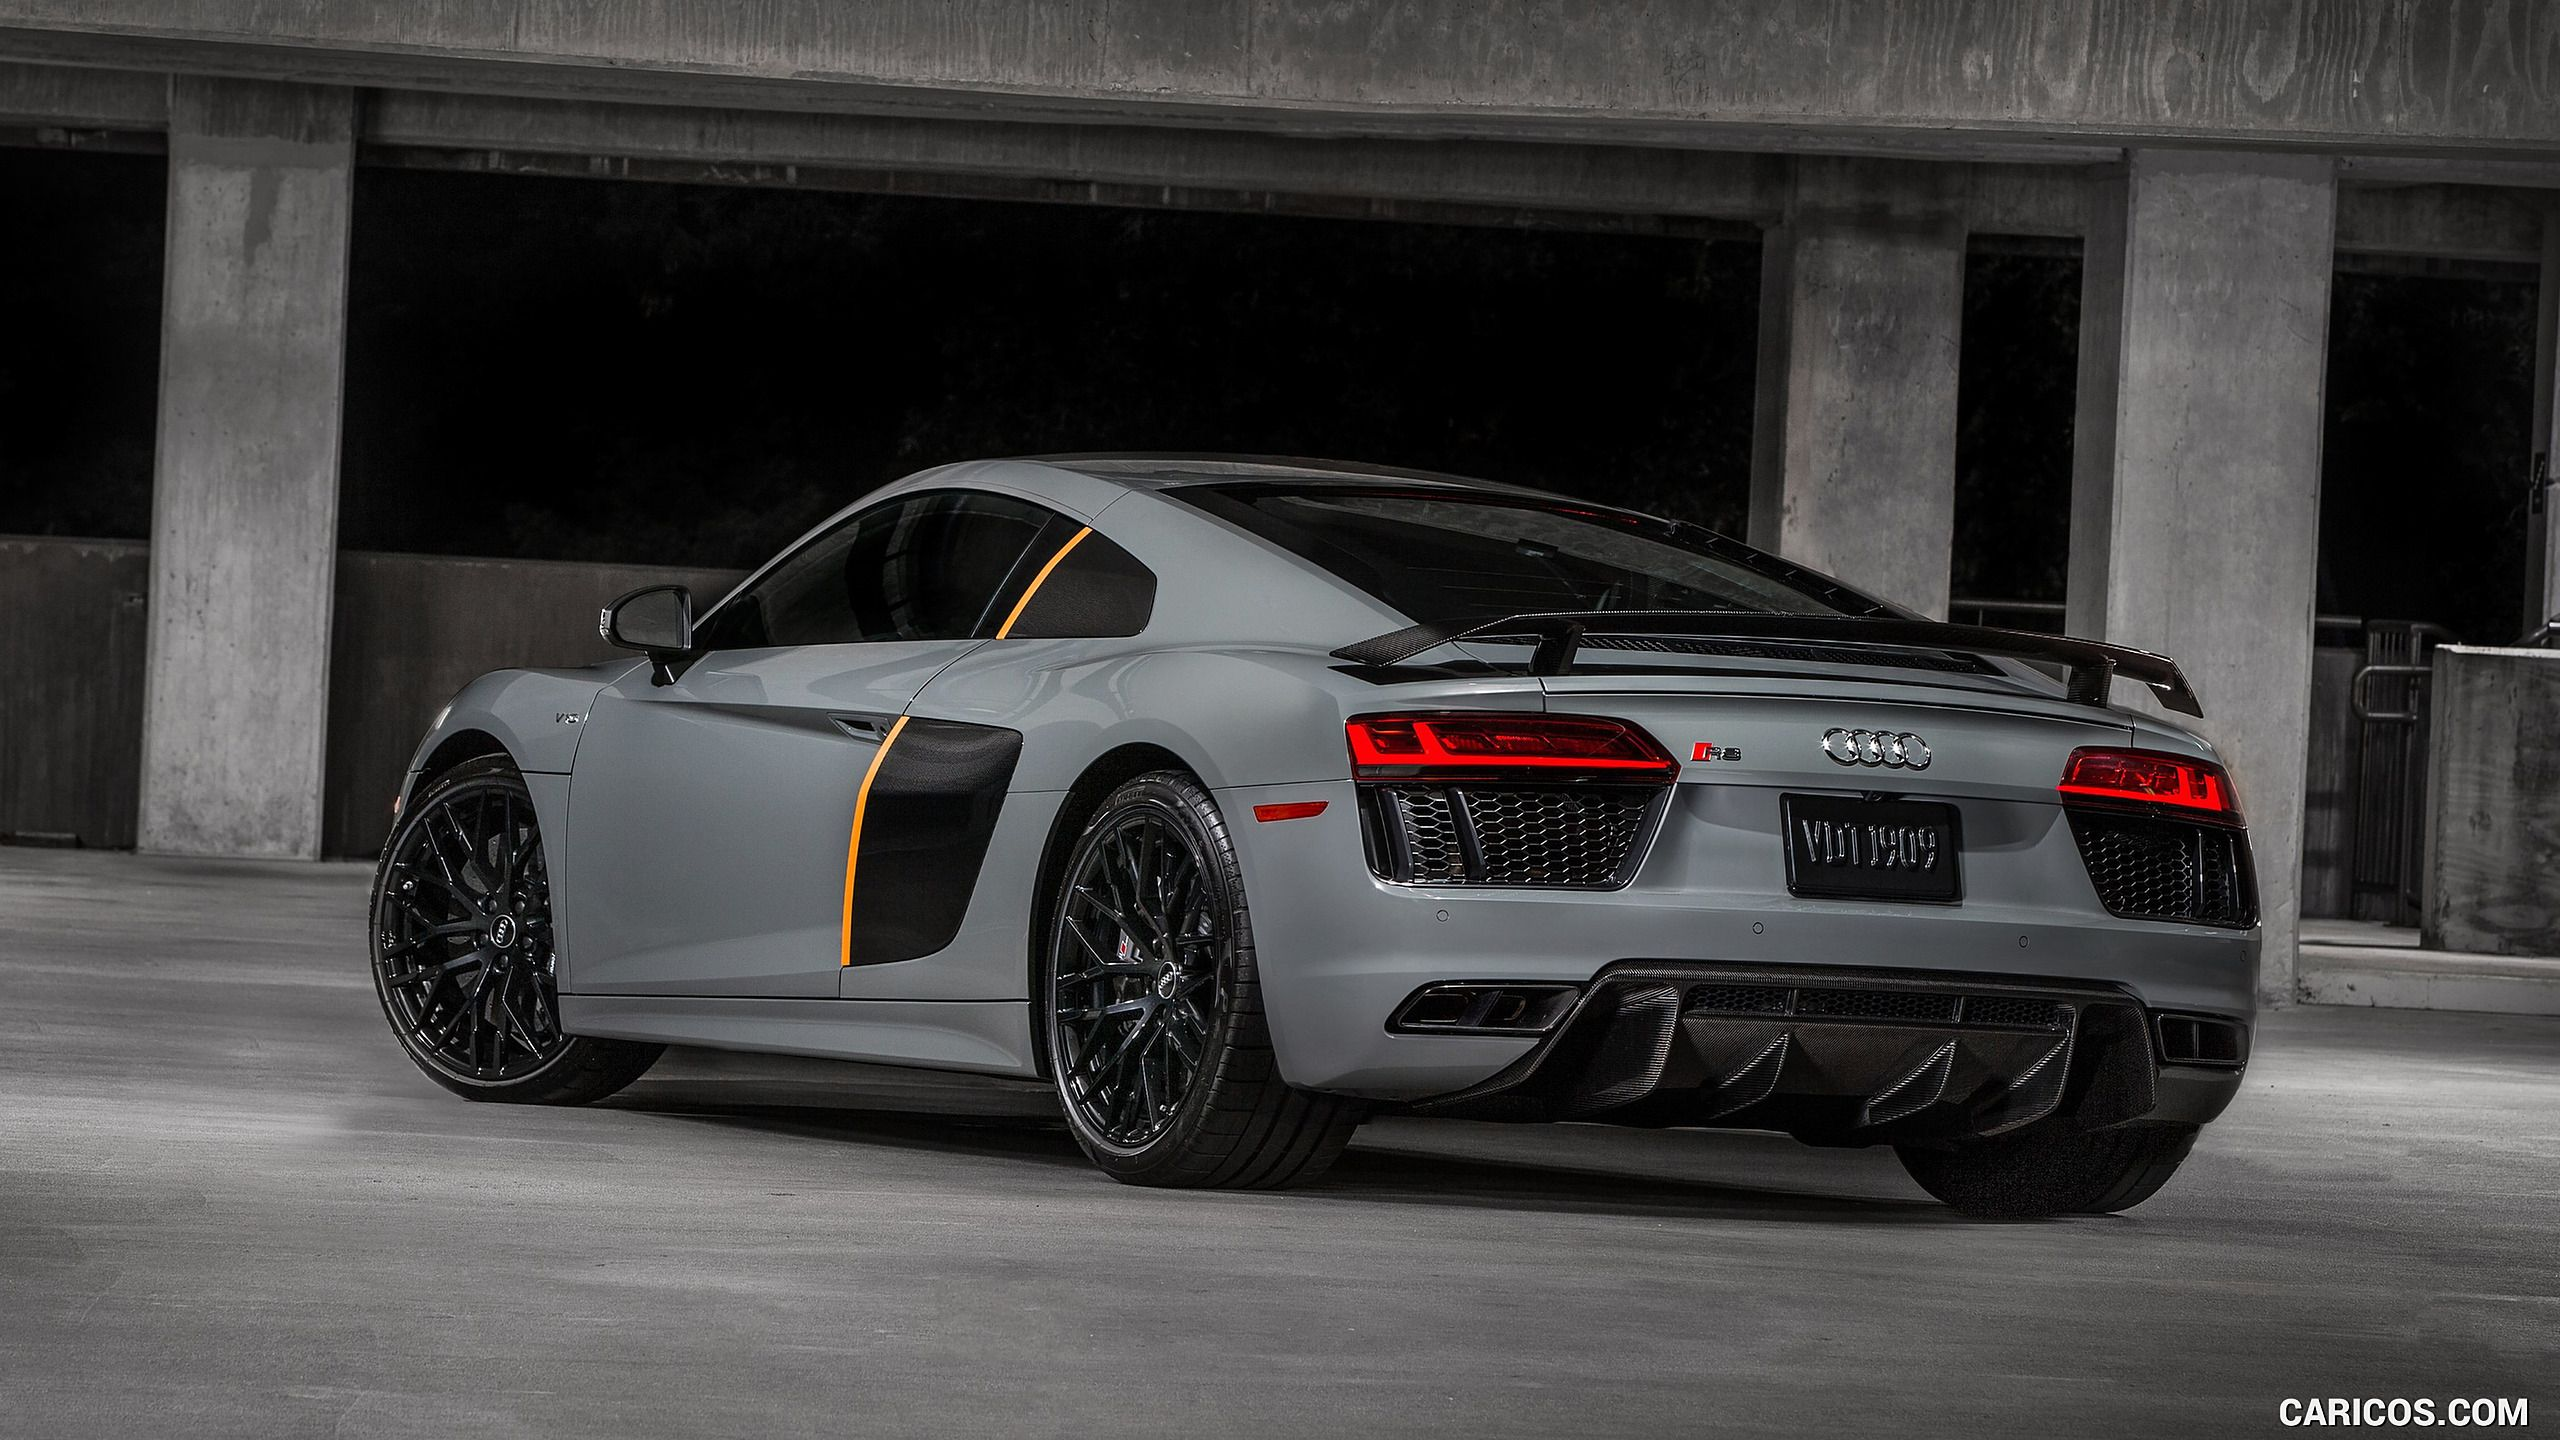 2017 Audi R8 V10 Plus Exclusive Edition Wallpaper (With